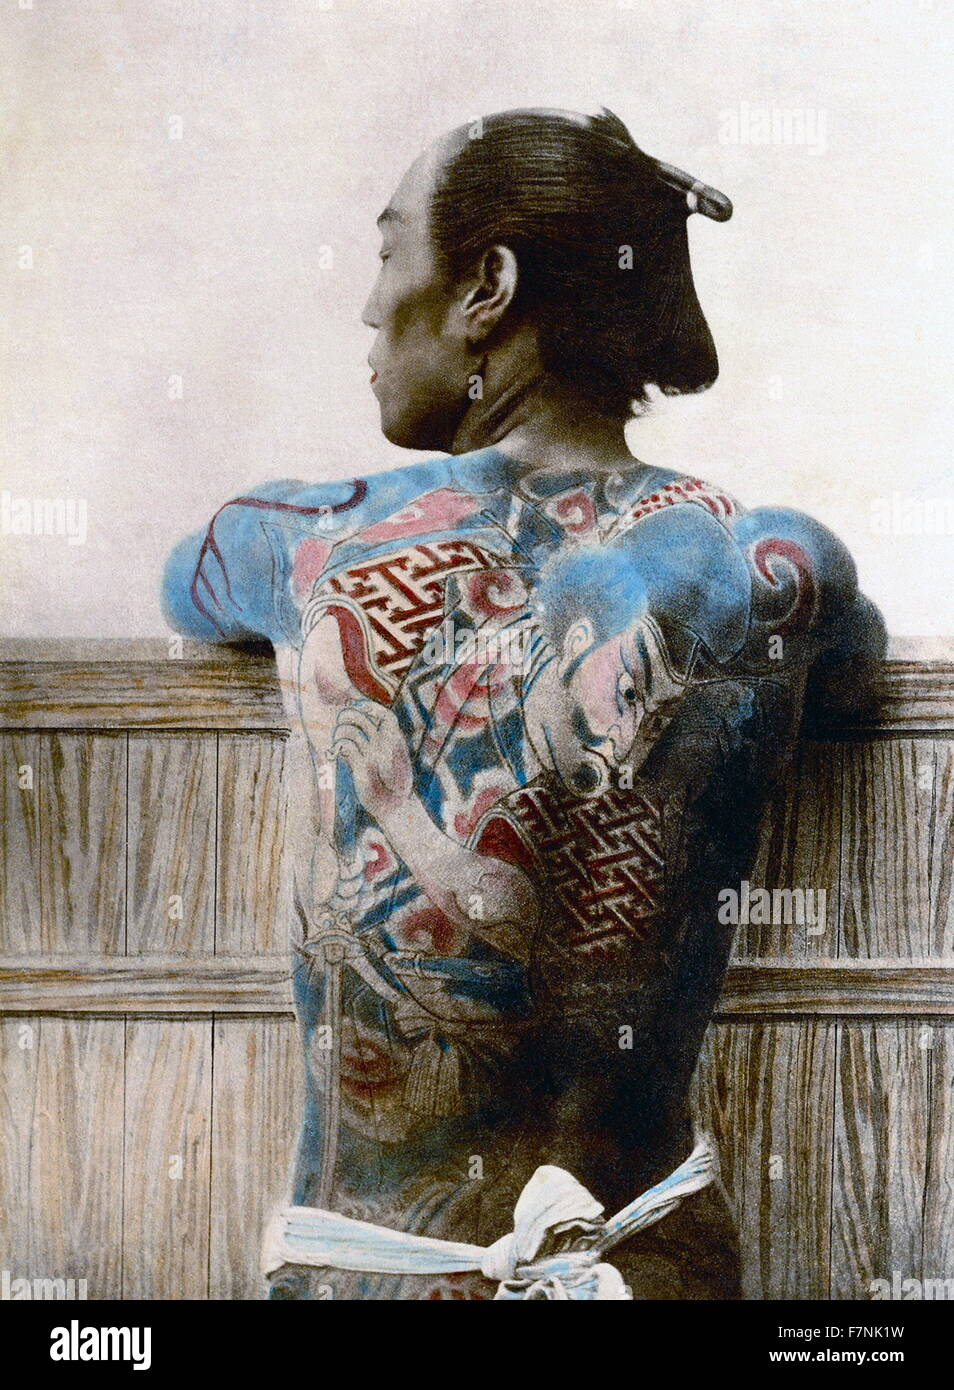 Japanese Samurai warrior with tattoos. Vintage photograph from japan 1890 - Stock Image